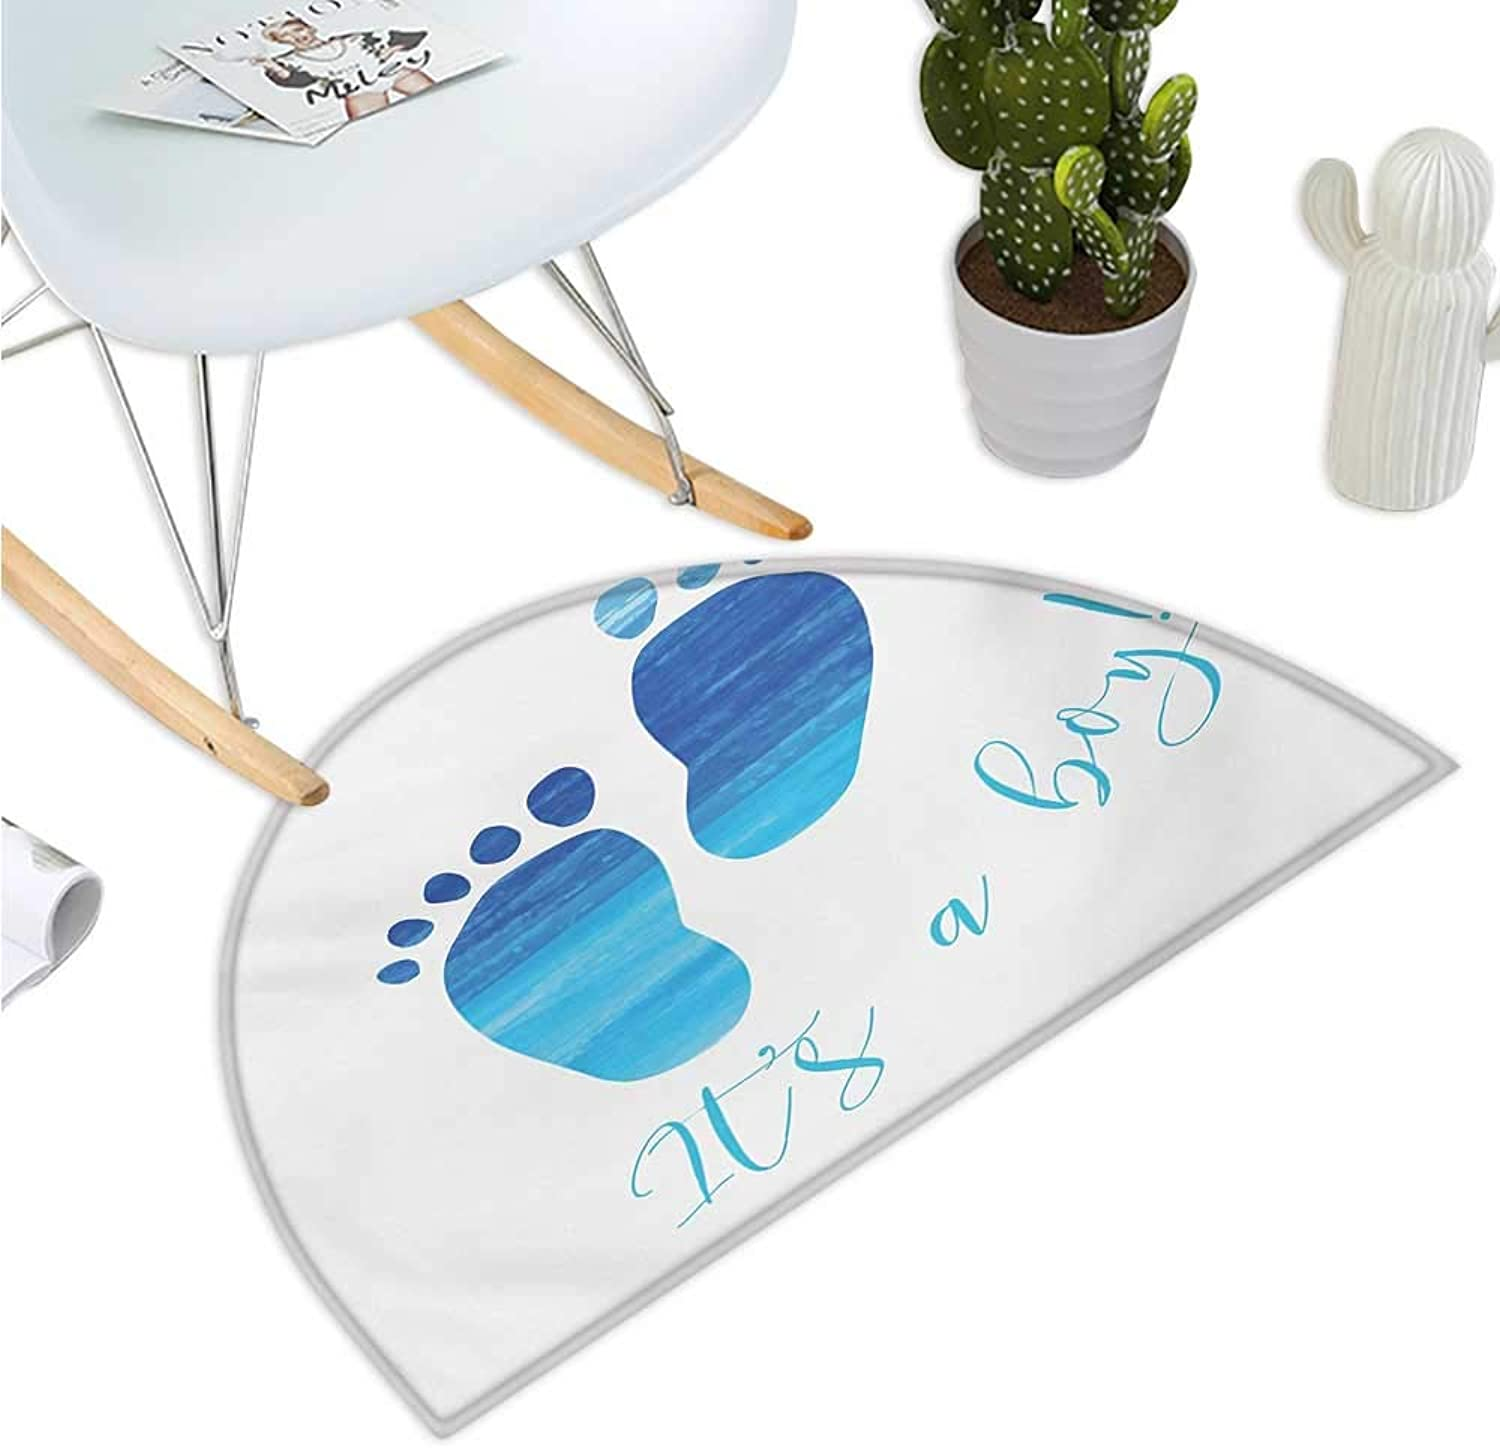 It`s a Boy Half Round Door mats Baby Gender Reveal Concept Illustration Footprints with Sea Inspired Design Bathroom Mat H 39.3  xD 59  bluee and White